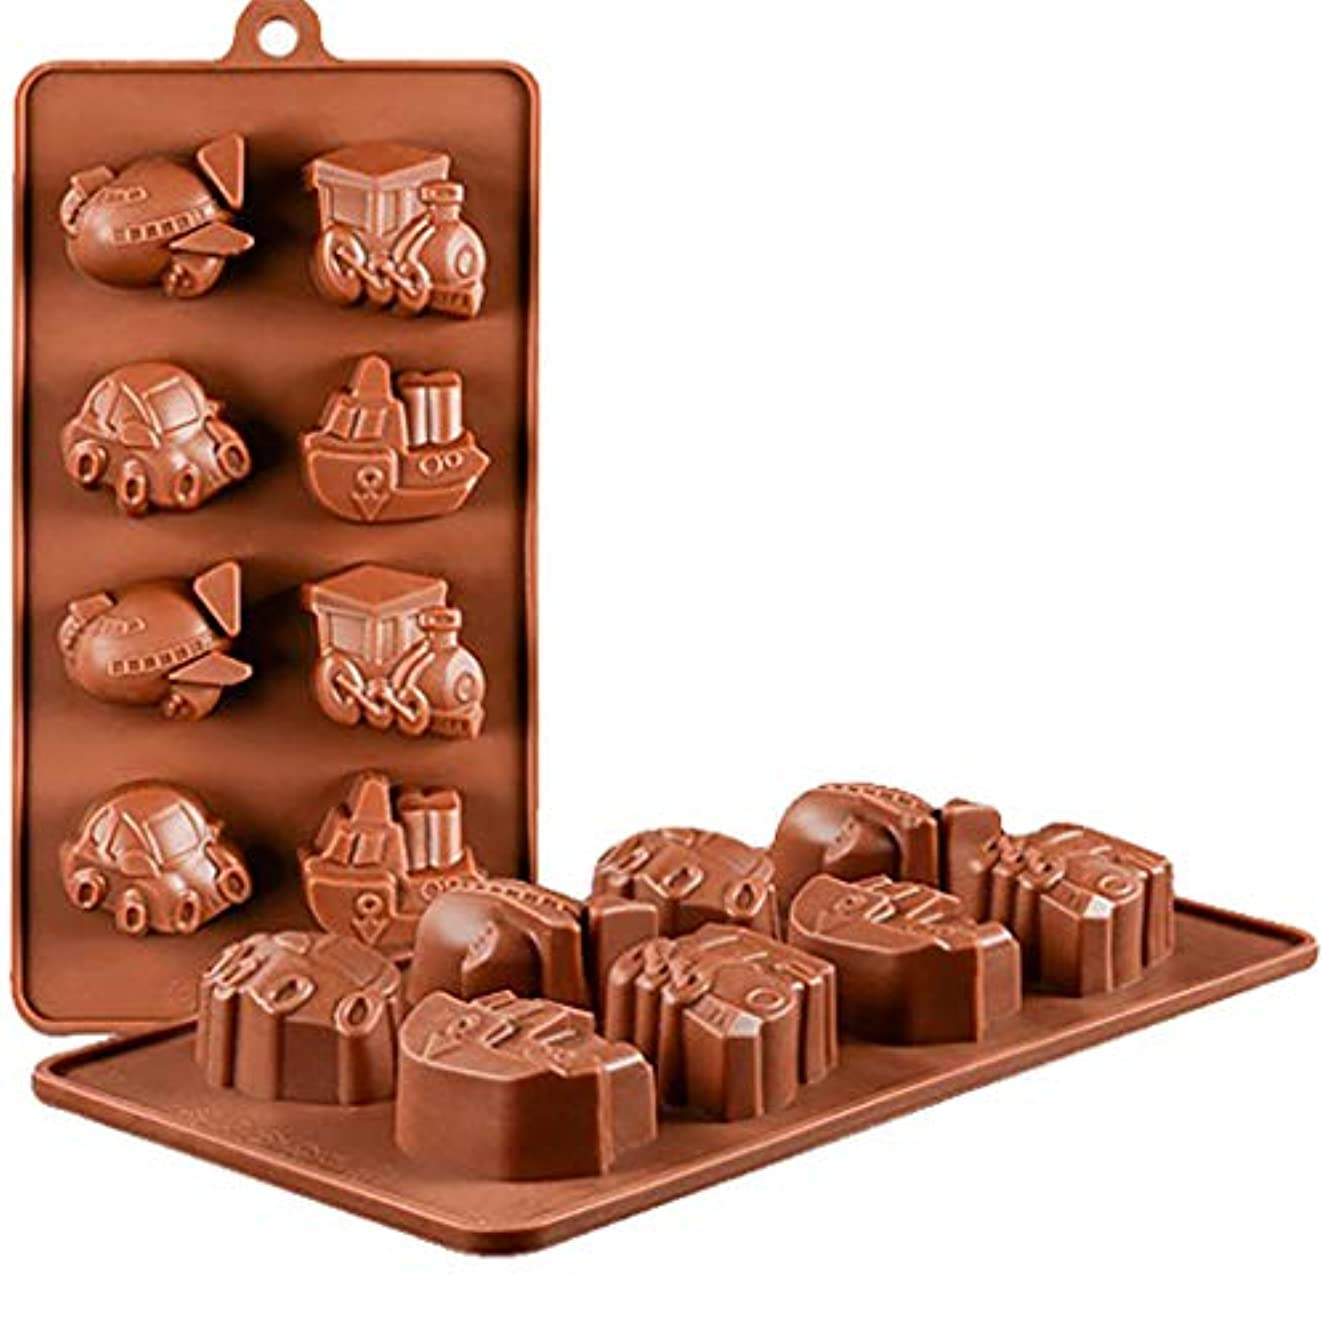 HSada 8 Cavity Thomas Train Car Airplane Ship Shaped Silicone Cake Baking Mold Cake Pan Muffin Cups Handmade Soap Molds Biscuit Chocolate Ice Cube Tray DIY Mold